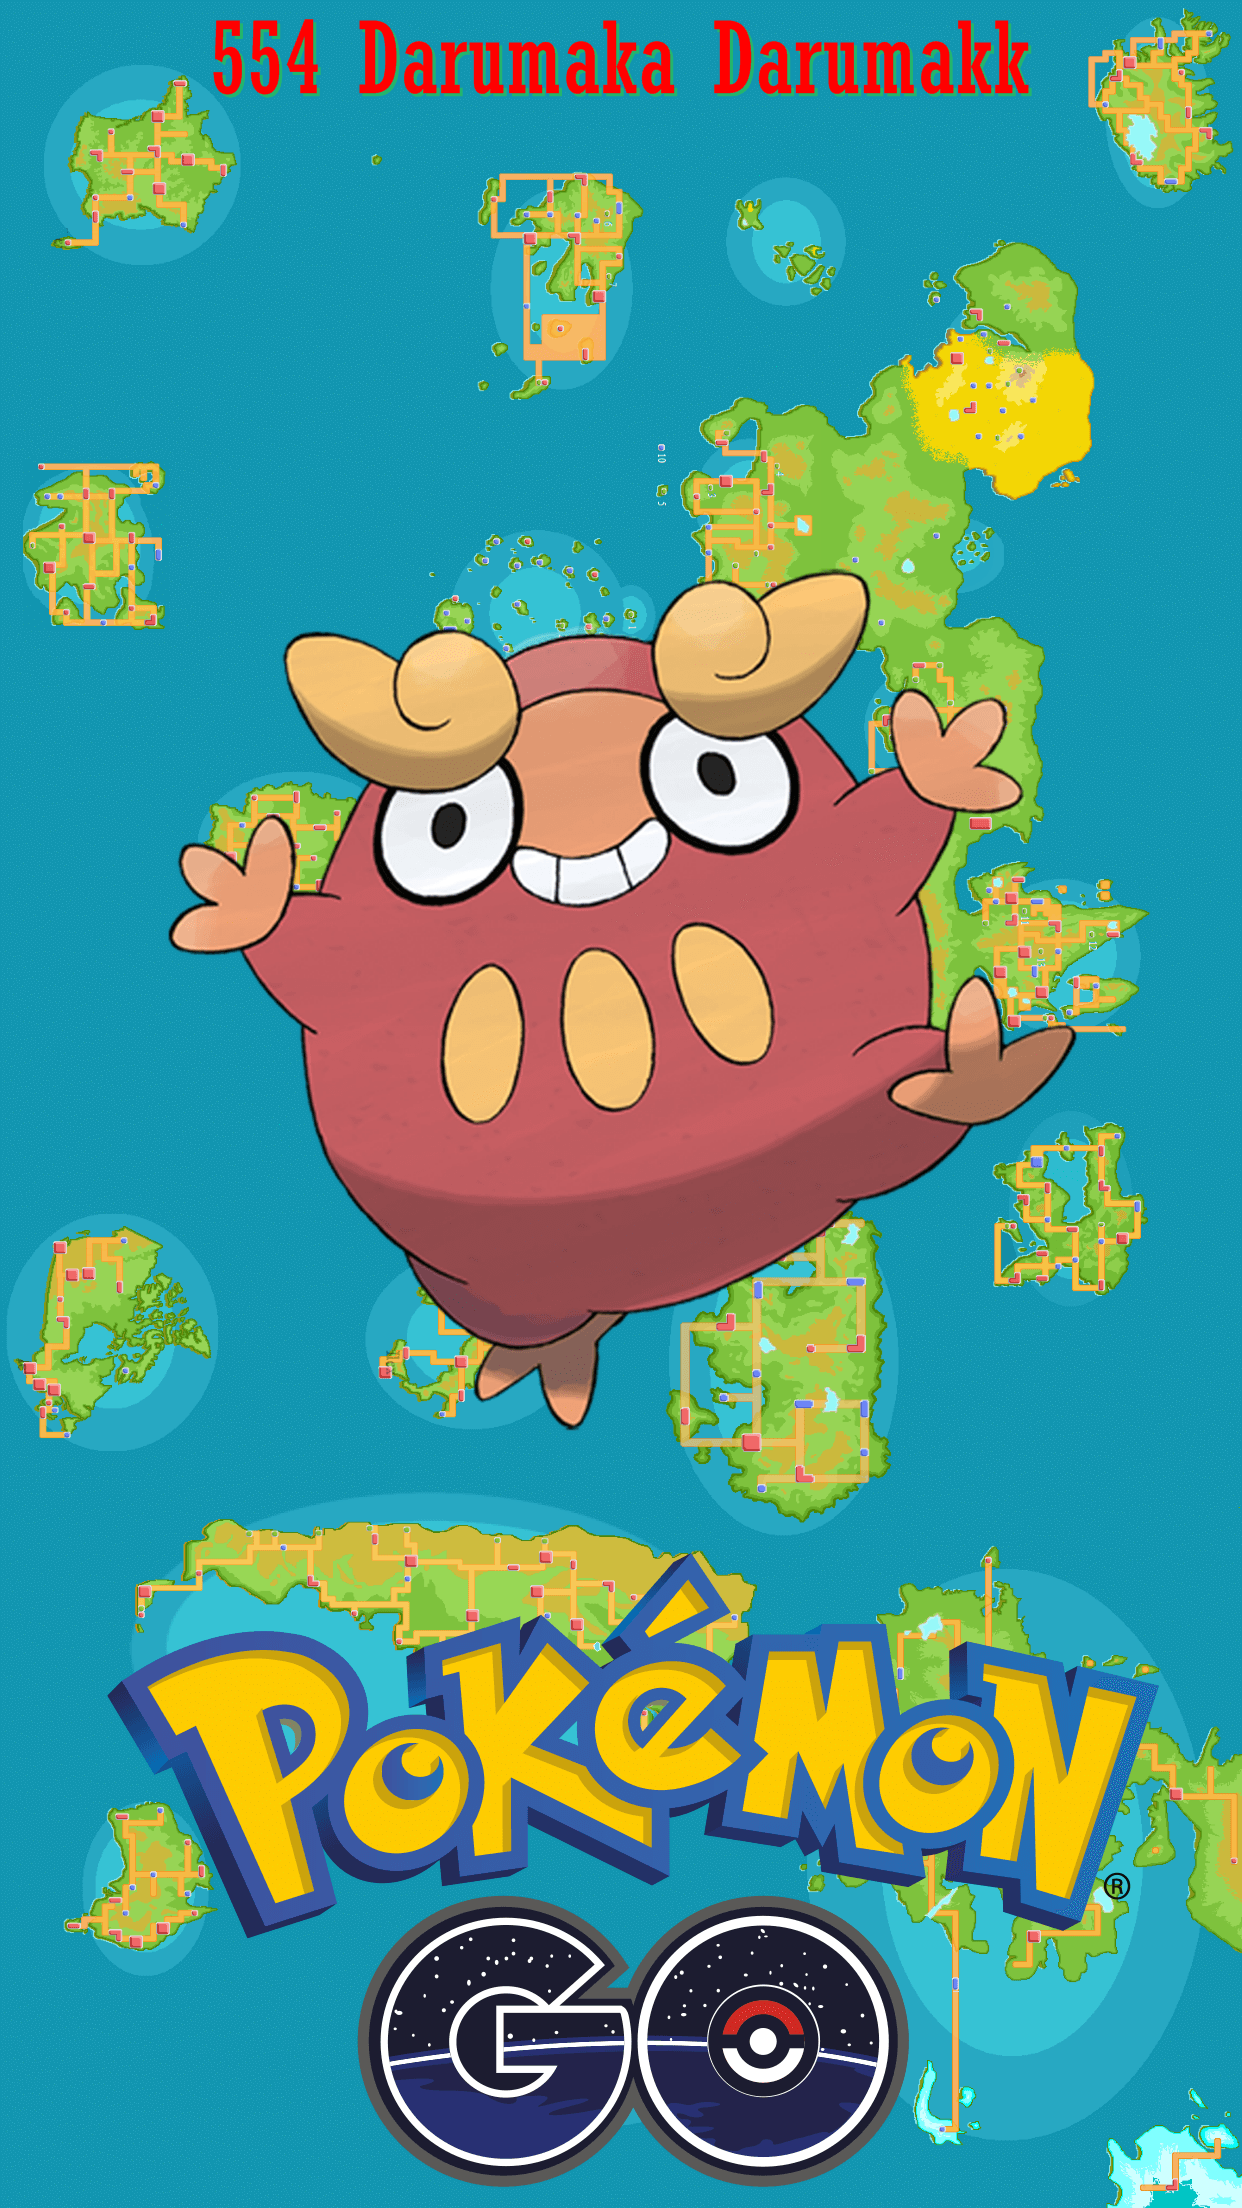 554 Street Map Darumaka Darumakk | Wallpaper